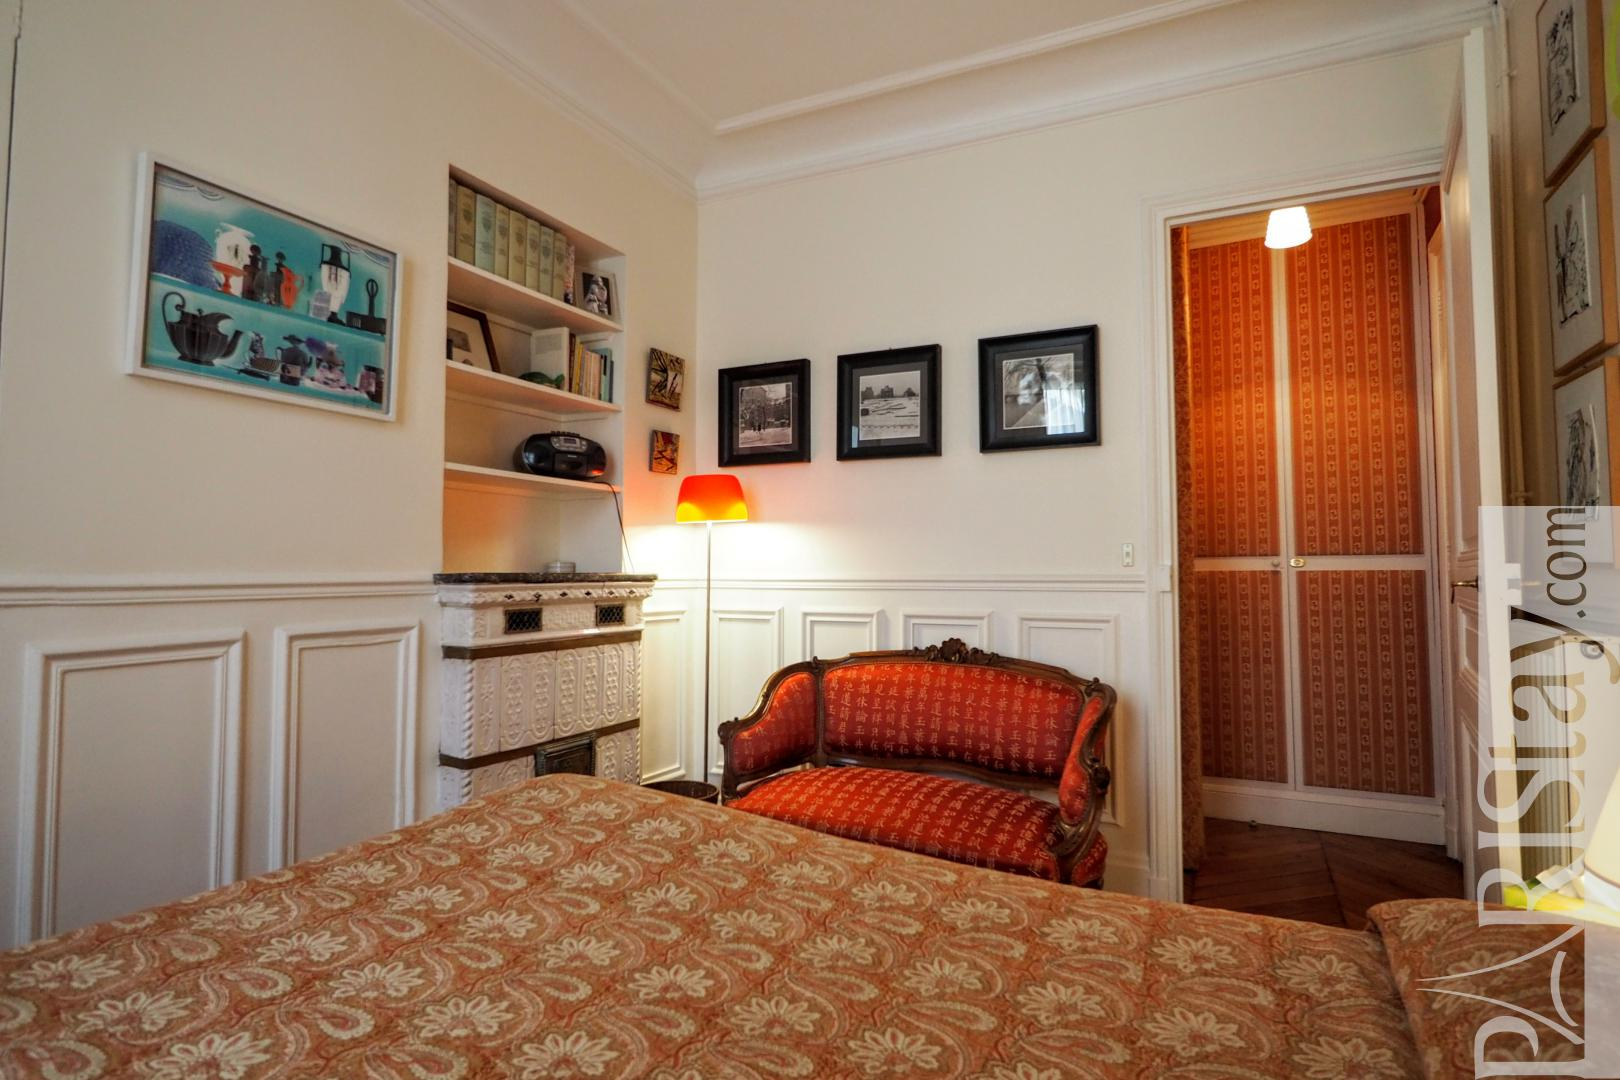 Paris location appartements meubl s t3 meuble le marais - Chambre a coucher paris ...